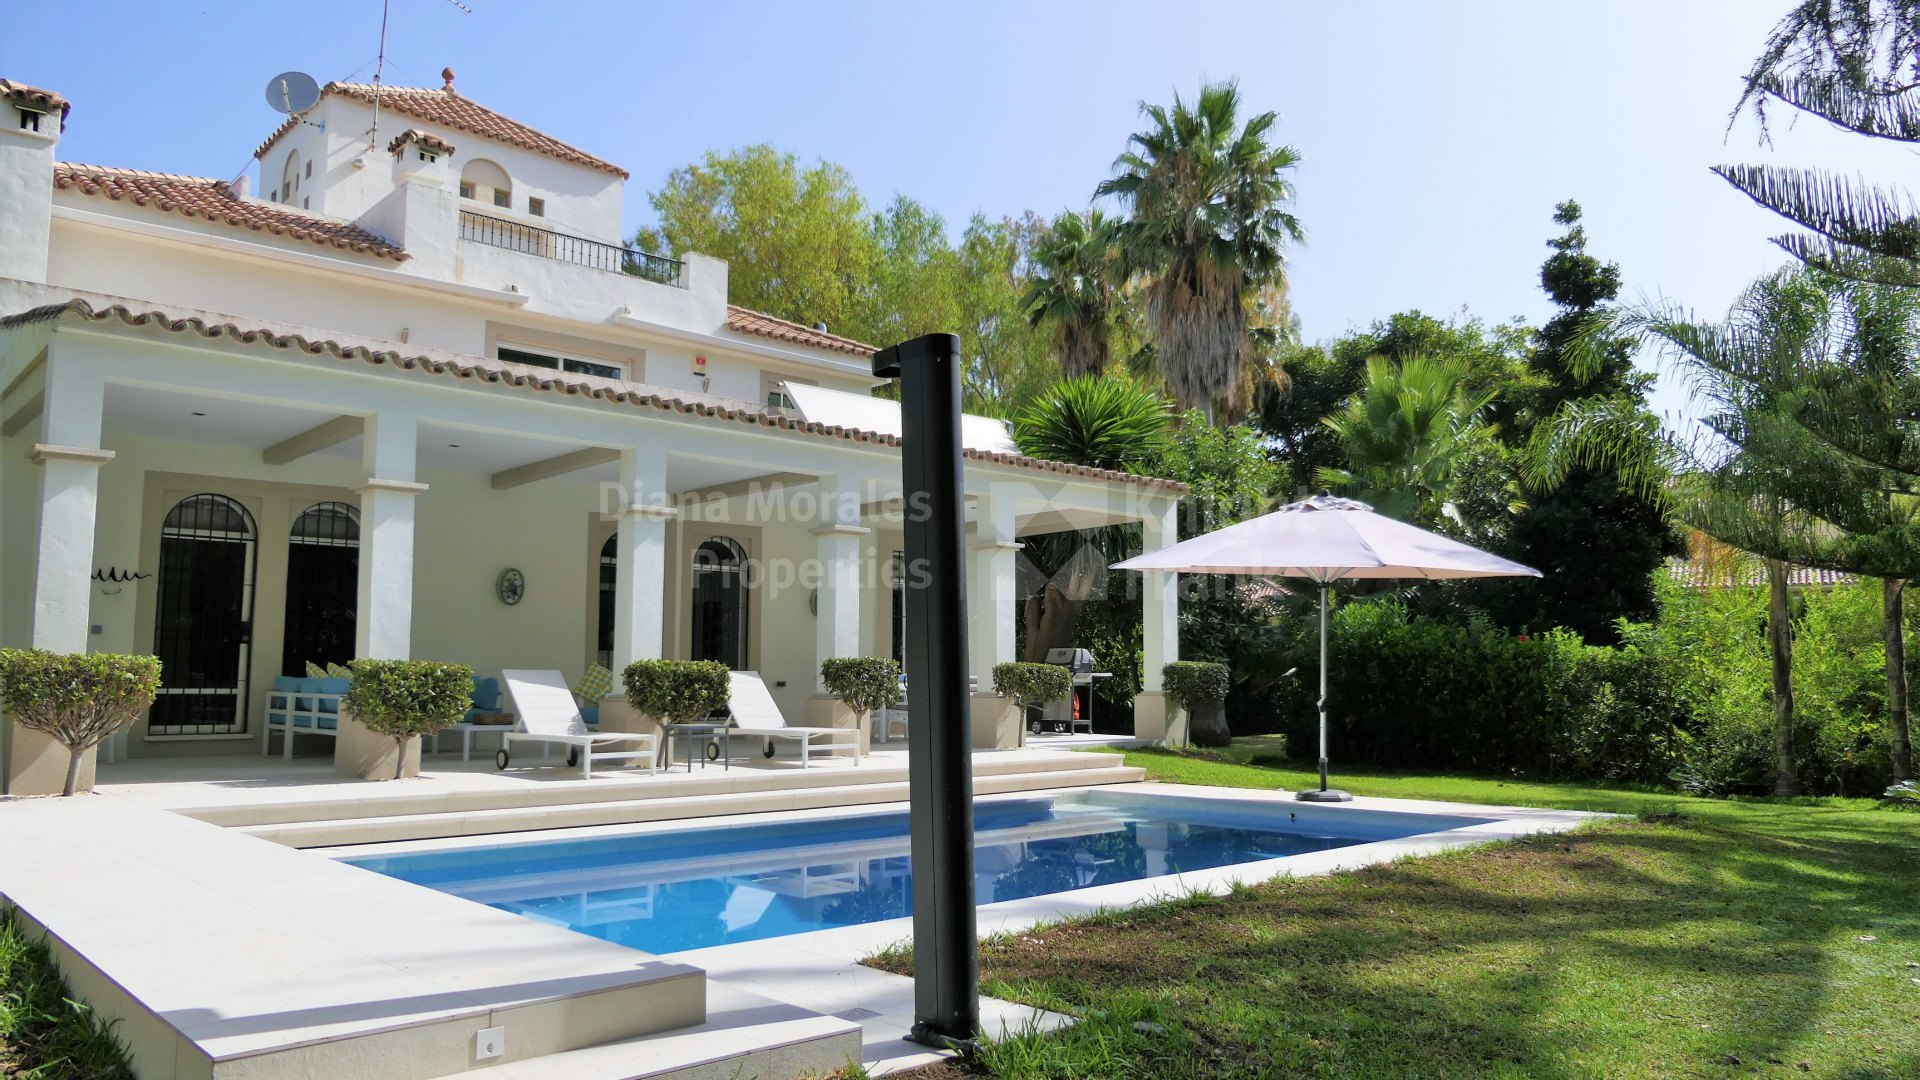 Villa for sale in Lagomar